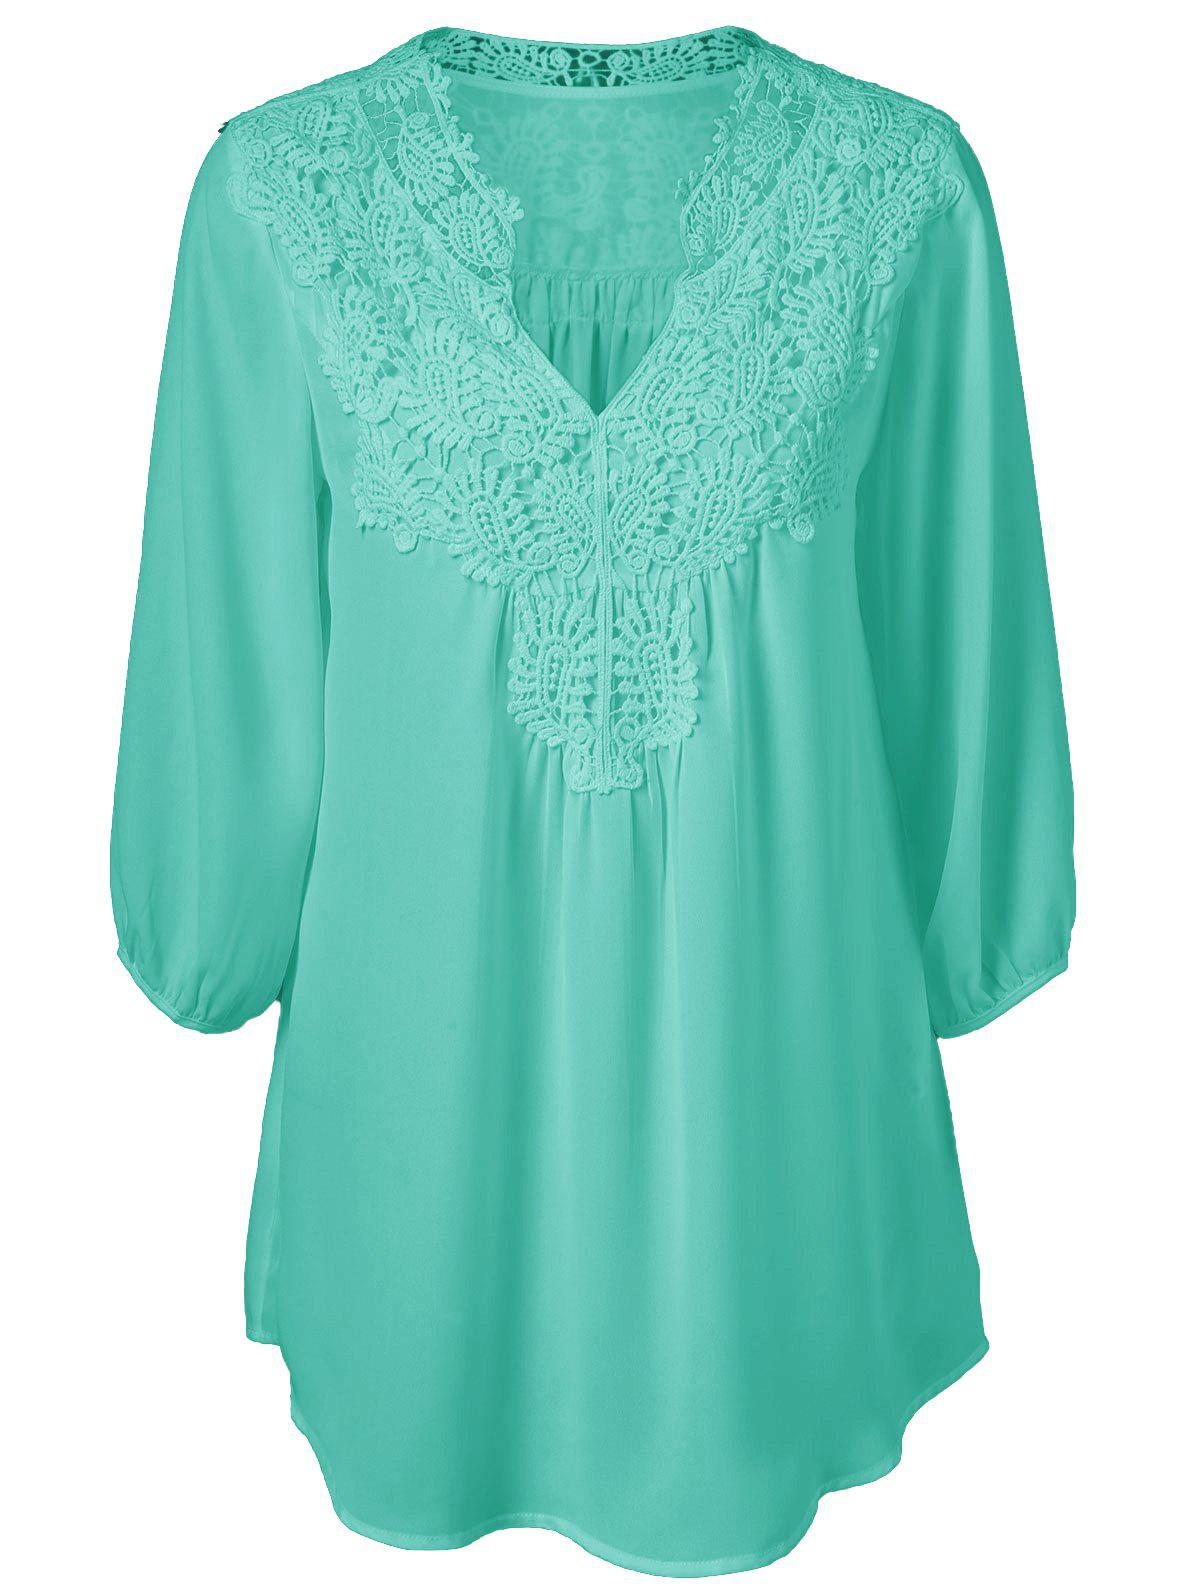 Plus Size Sweet Crochet Spliced Tunic BlouseWOMEN<br><br>Size: 3XL; Color: GREEN; Material: Polyester; Shirt Length: Long; Sleeve Length: Three Quarter; Collar: V-Neck; Style: Casual; Season: Summer; Pattern Type: Patchwork; Weight: 0.2310kg; Package Contents: 1 x Blouse;